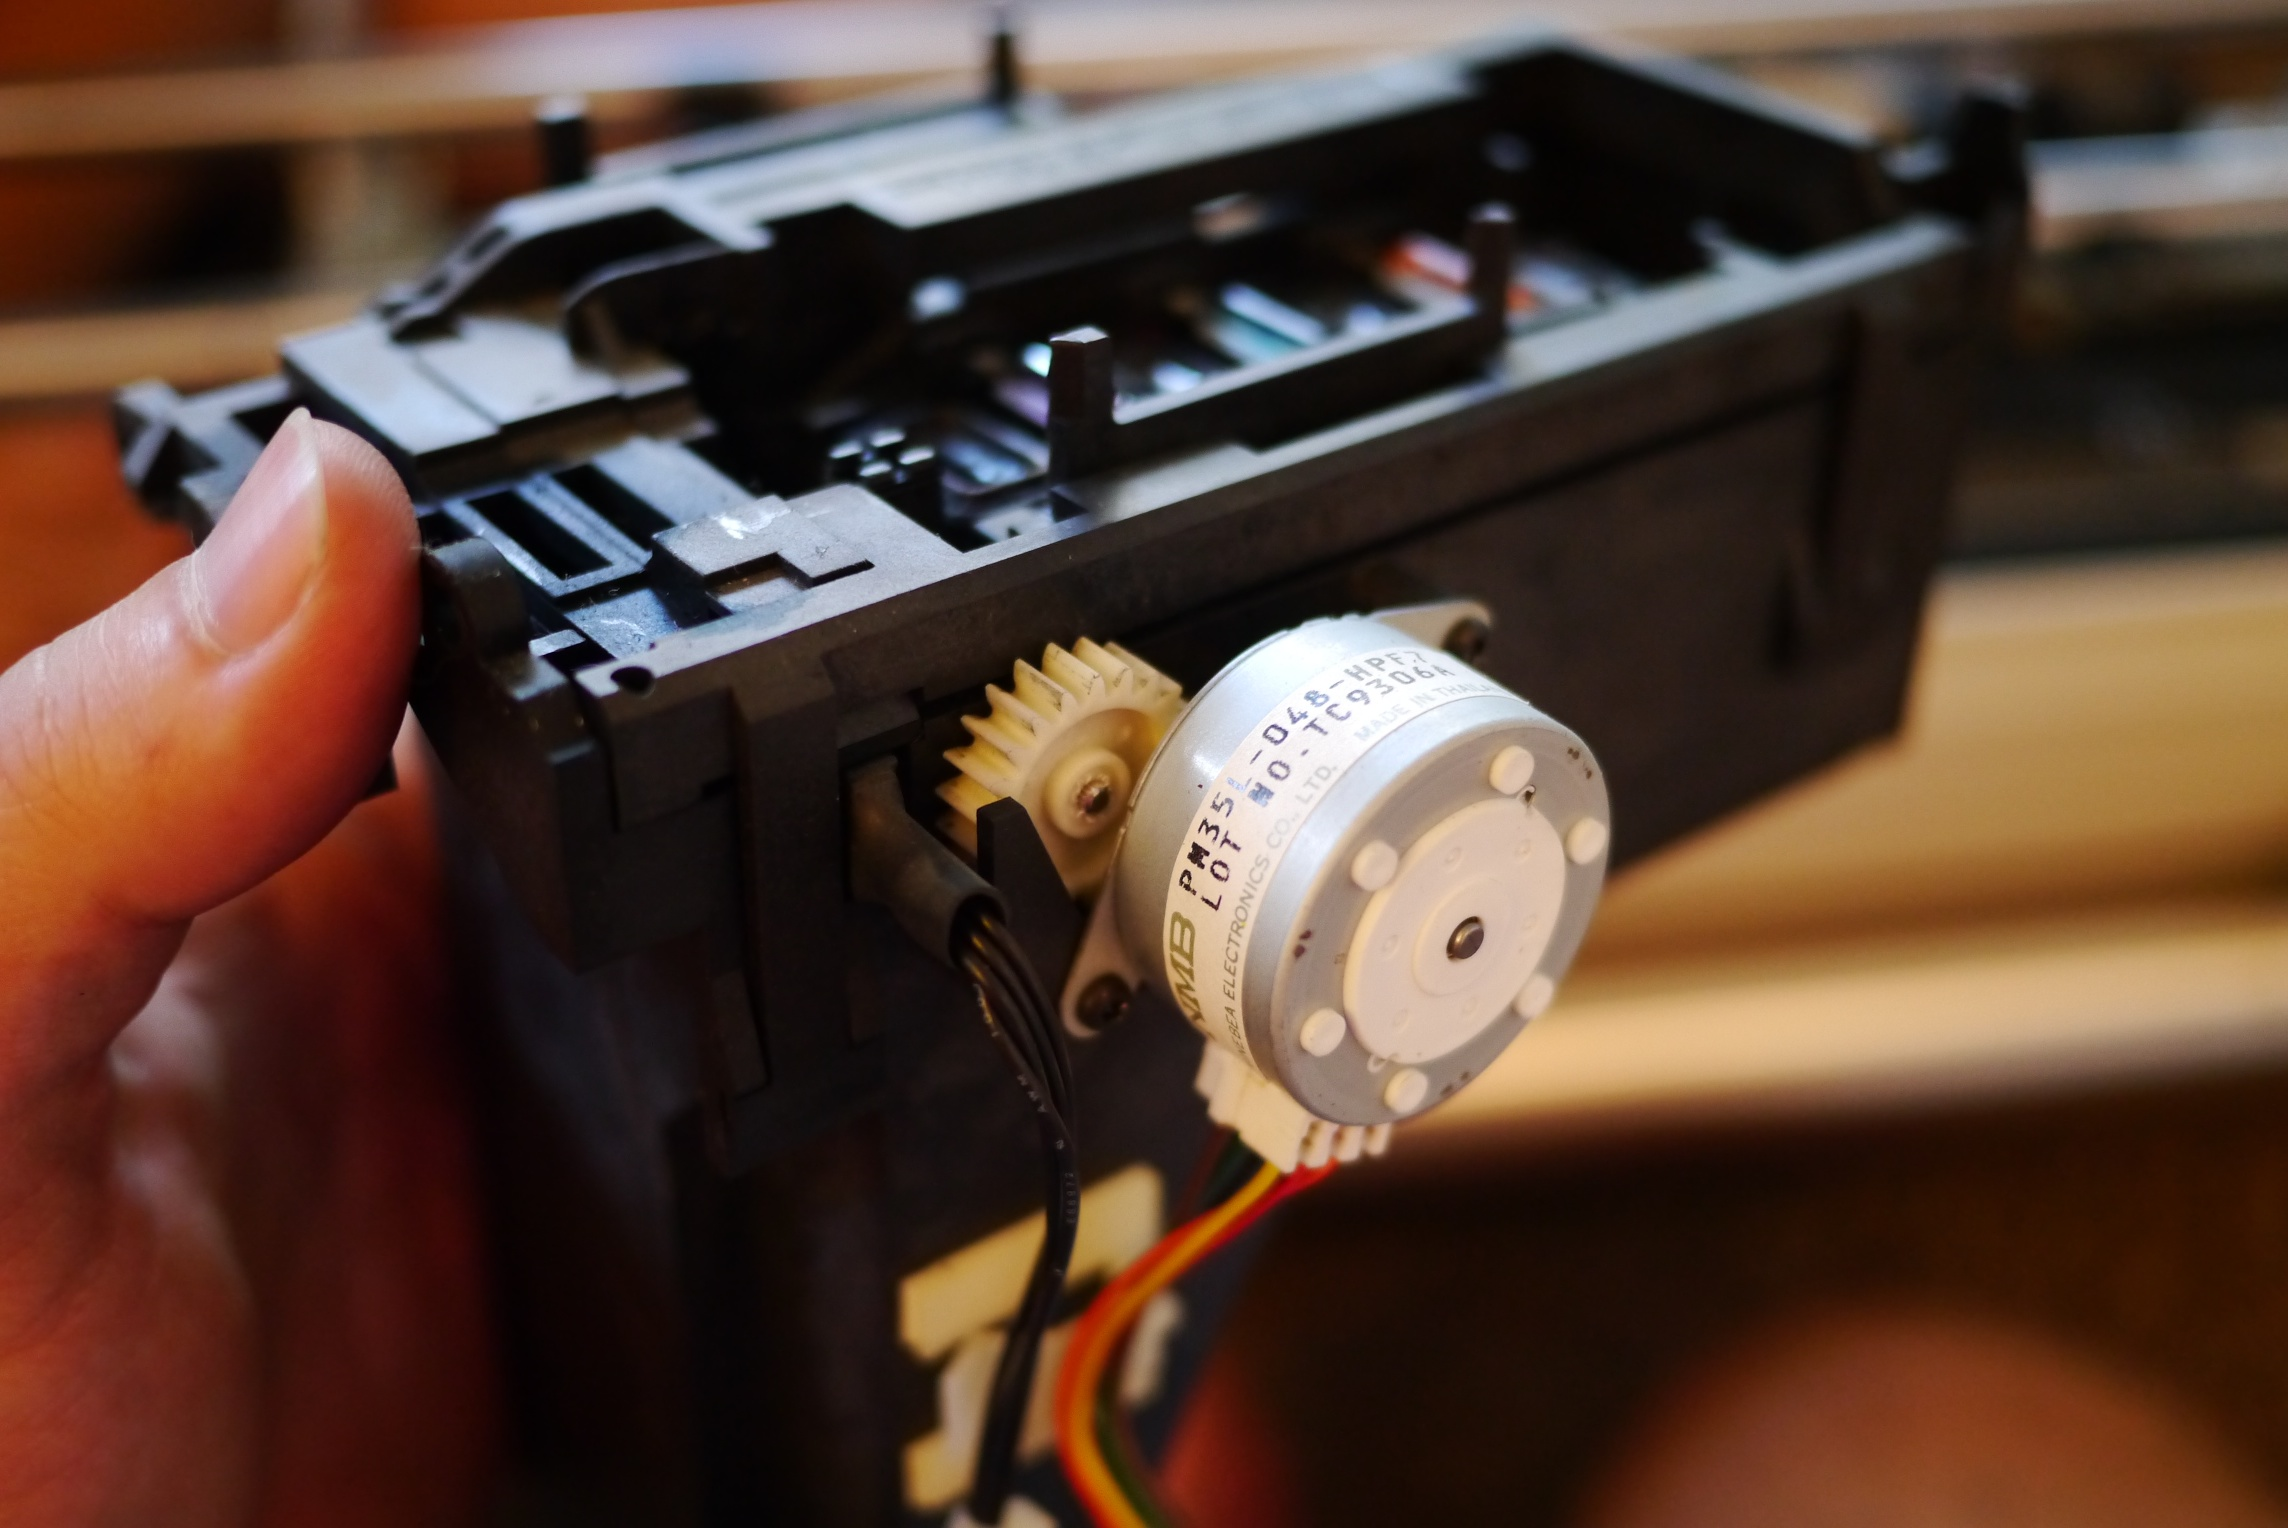 Hp plotter take apart and analysis things i 39 m doing for Print head stepper motor